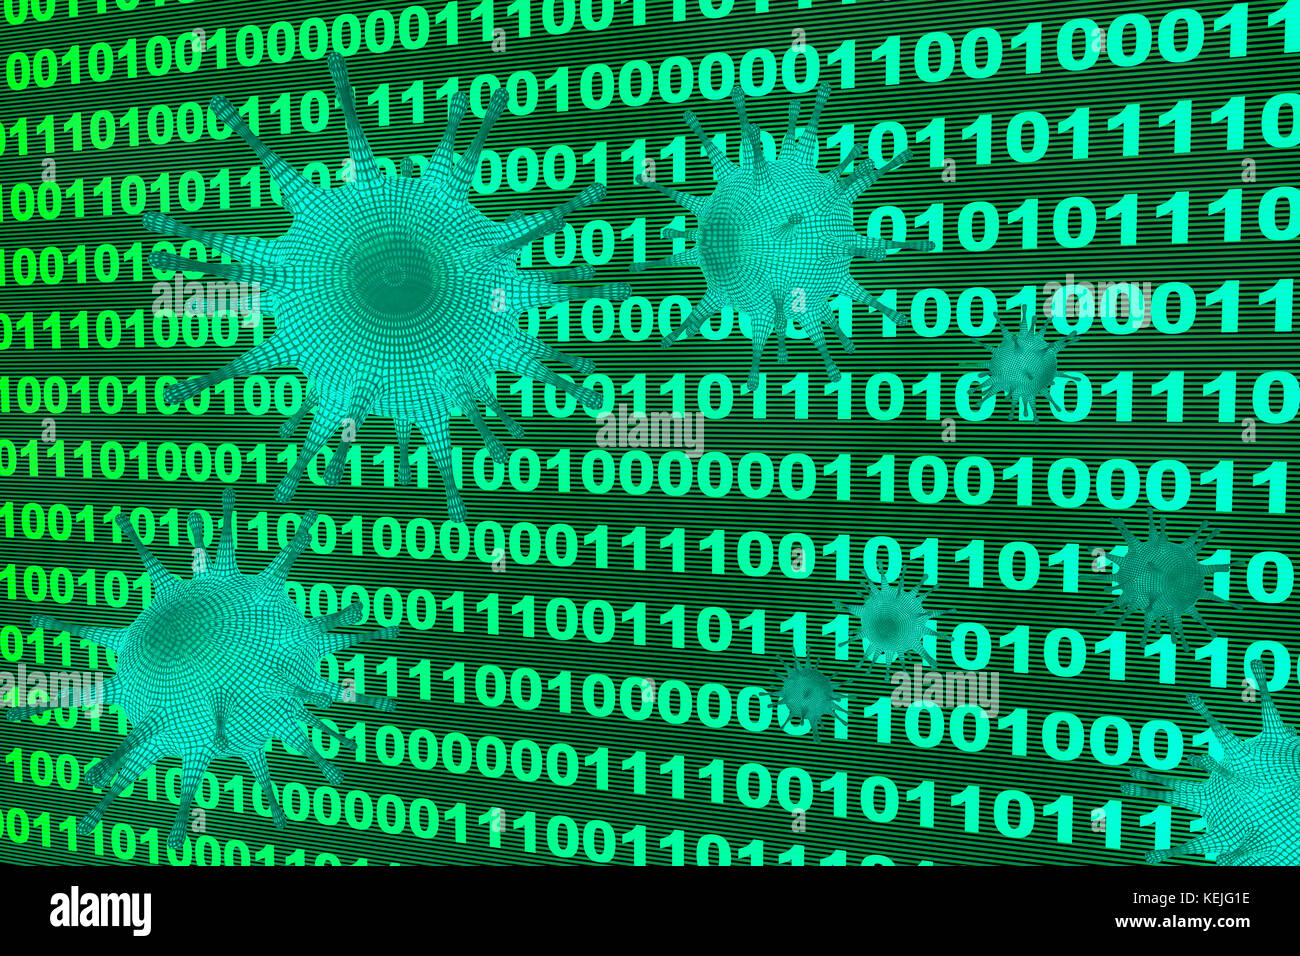 a computer virus infiltrate a system - Stock Image